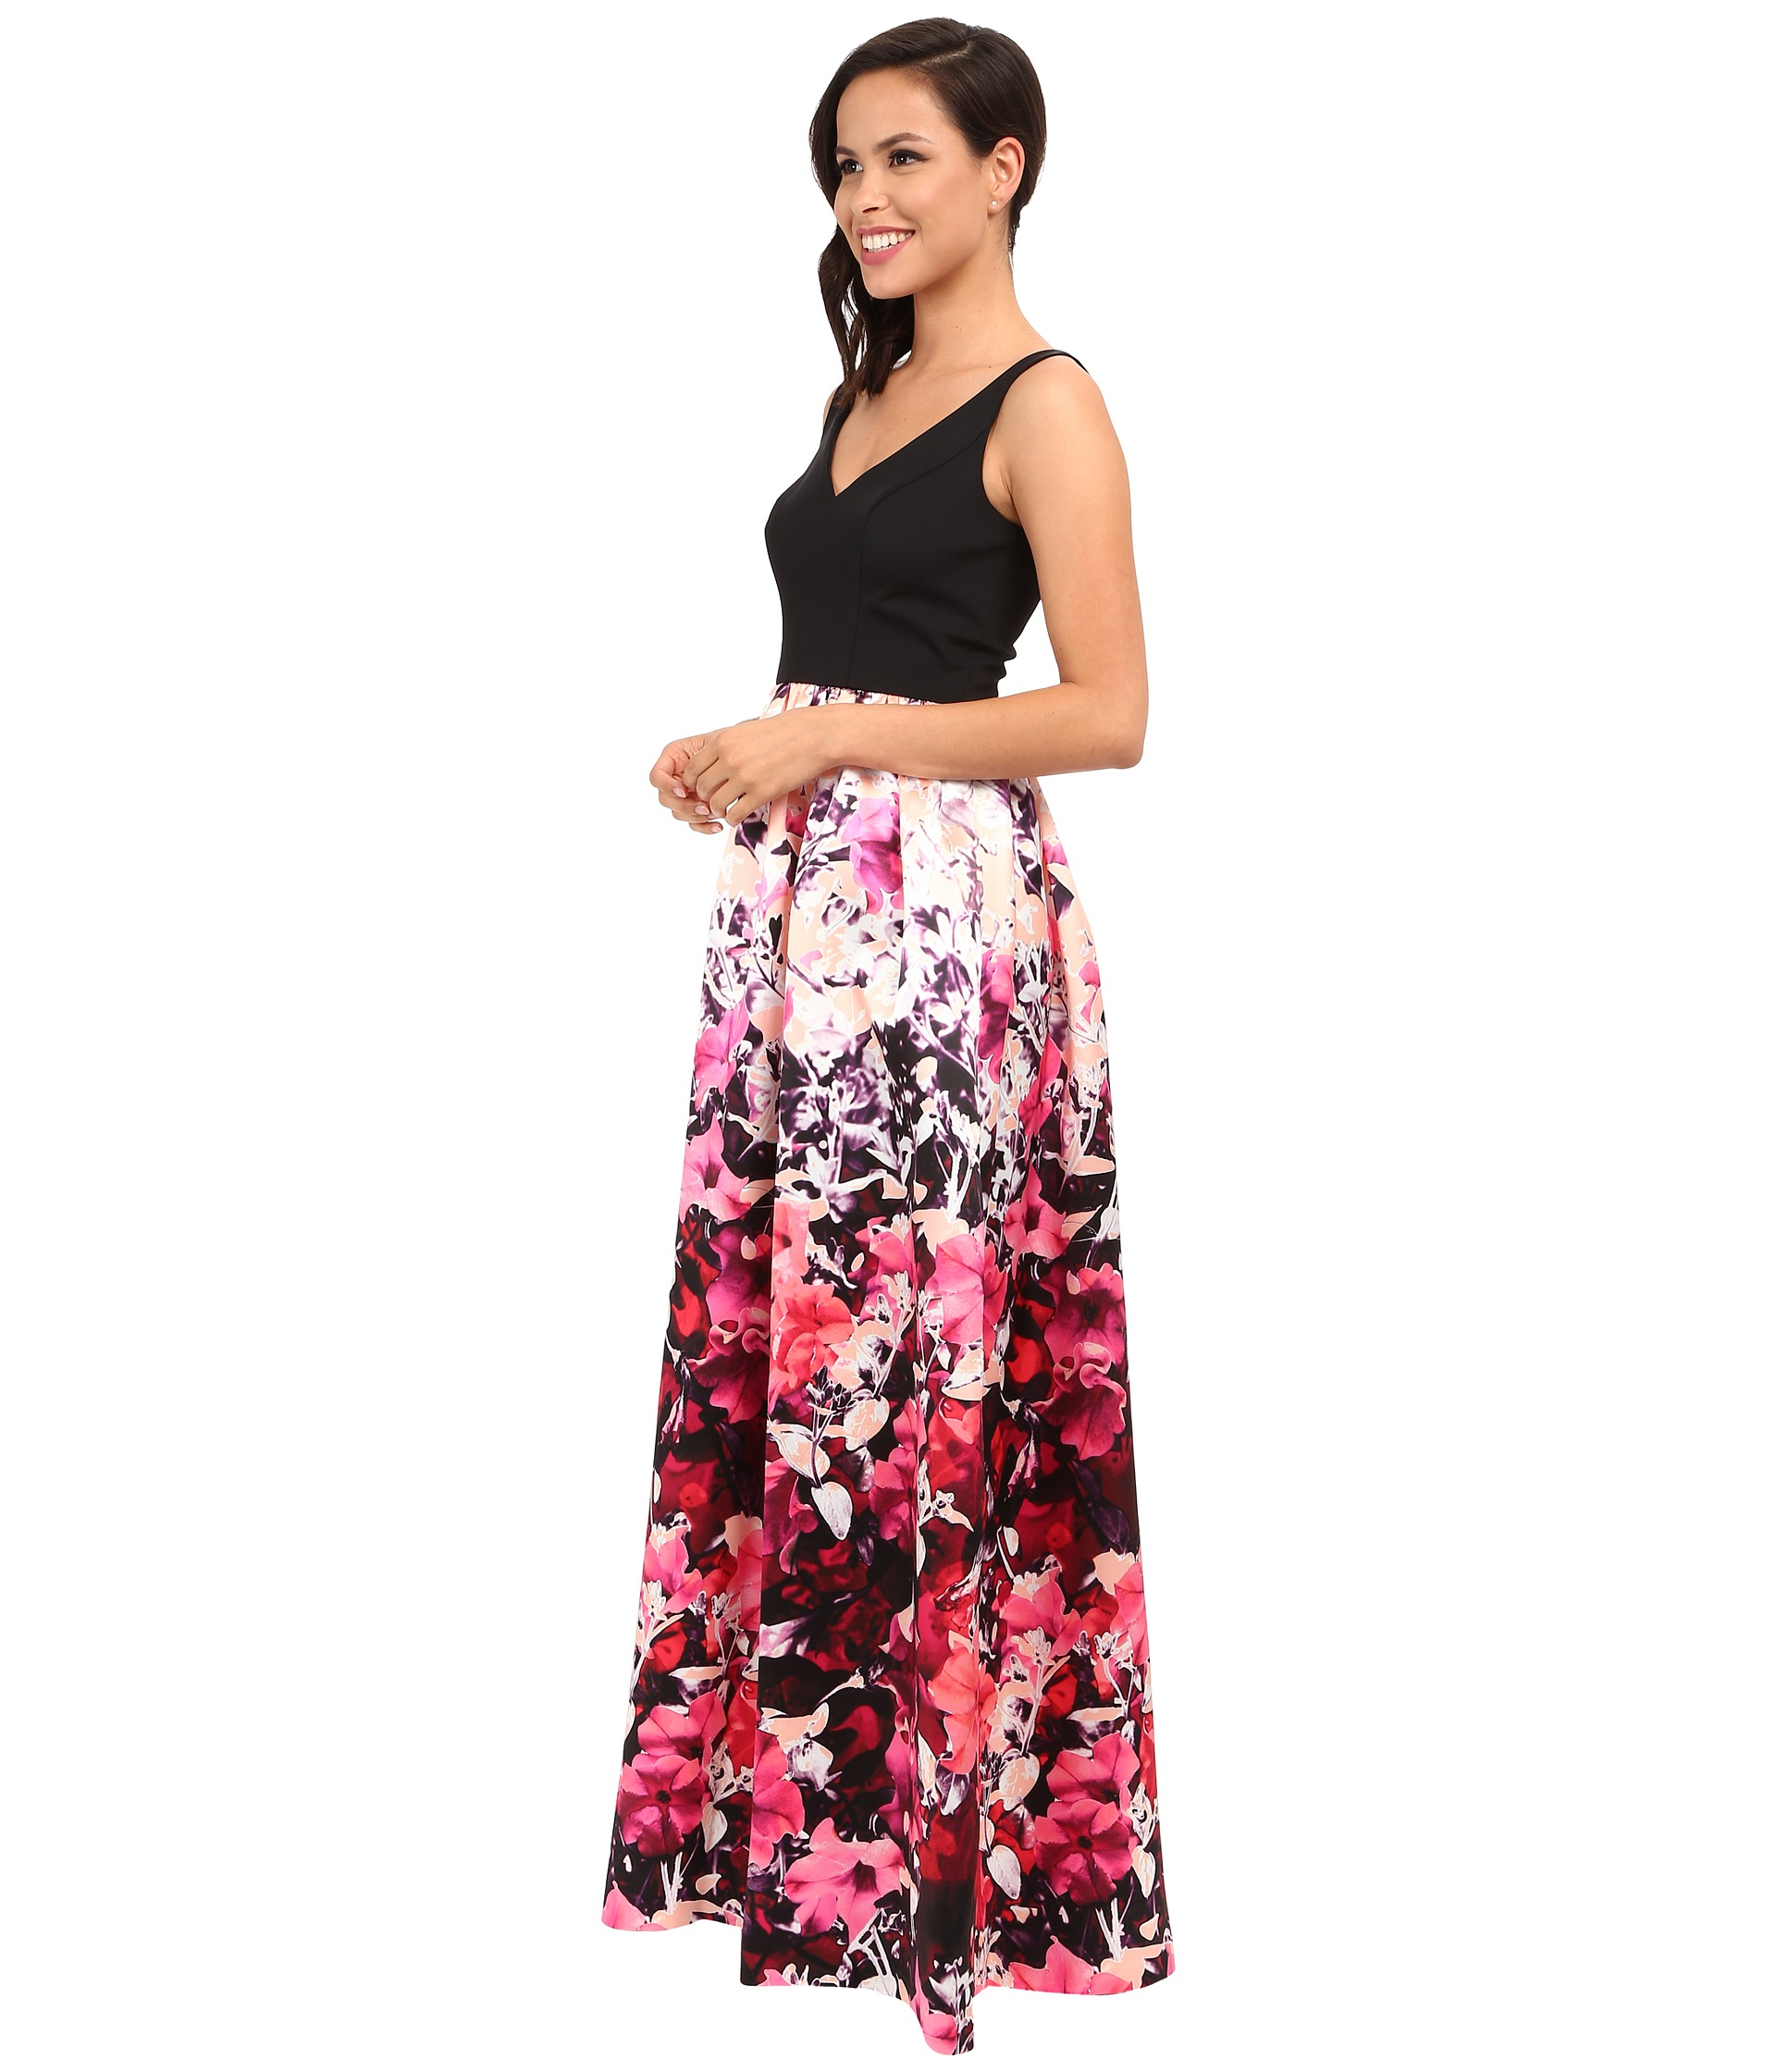 Adrianna Papell Synthetic Sleeveless Floral Dress Lyst